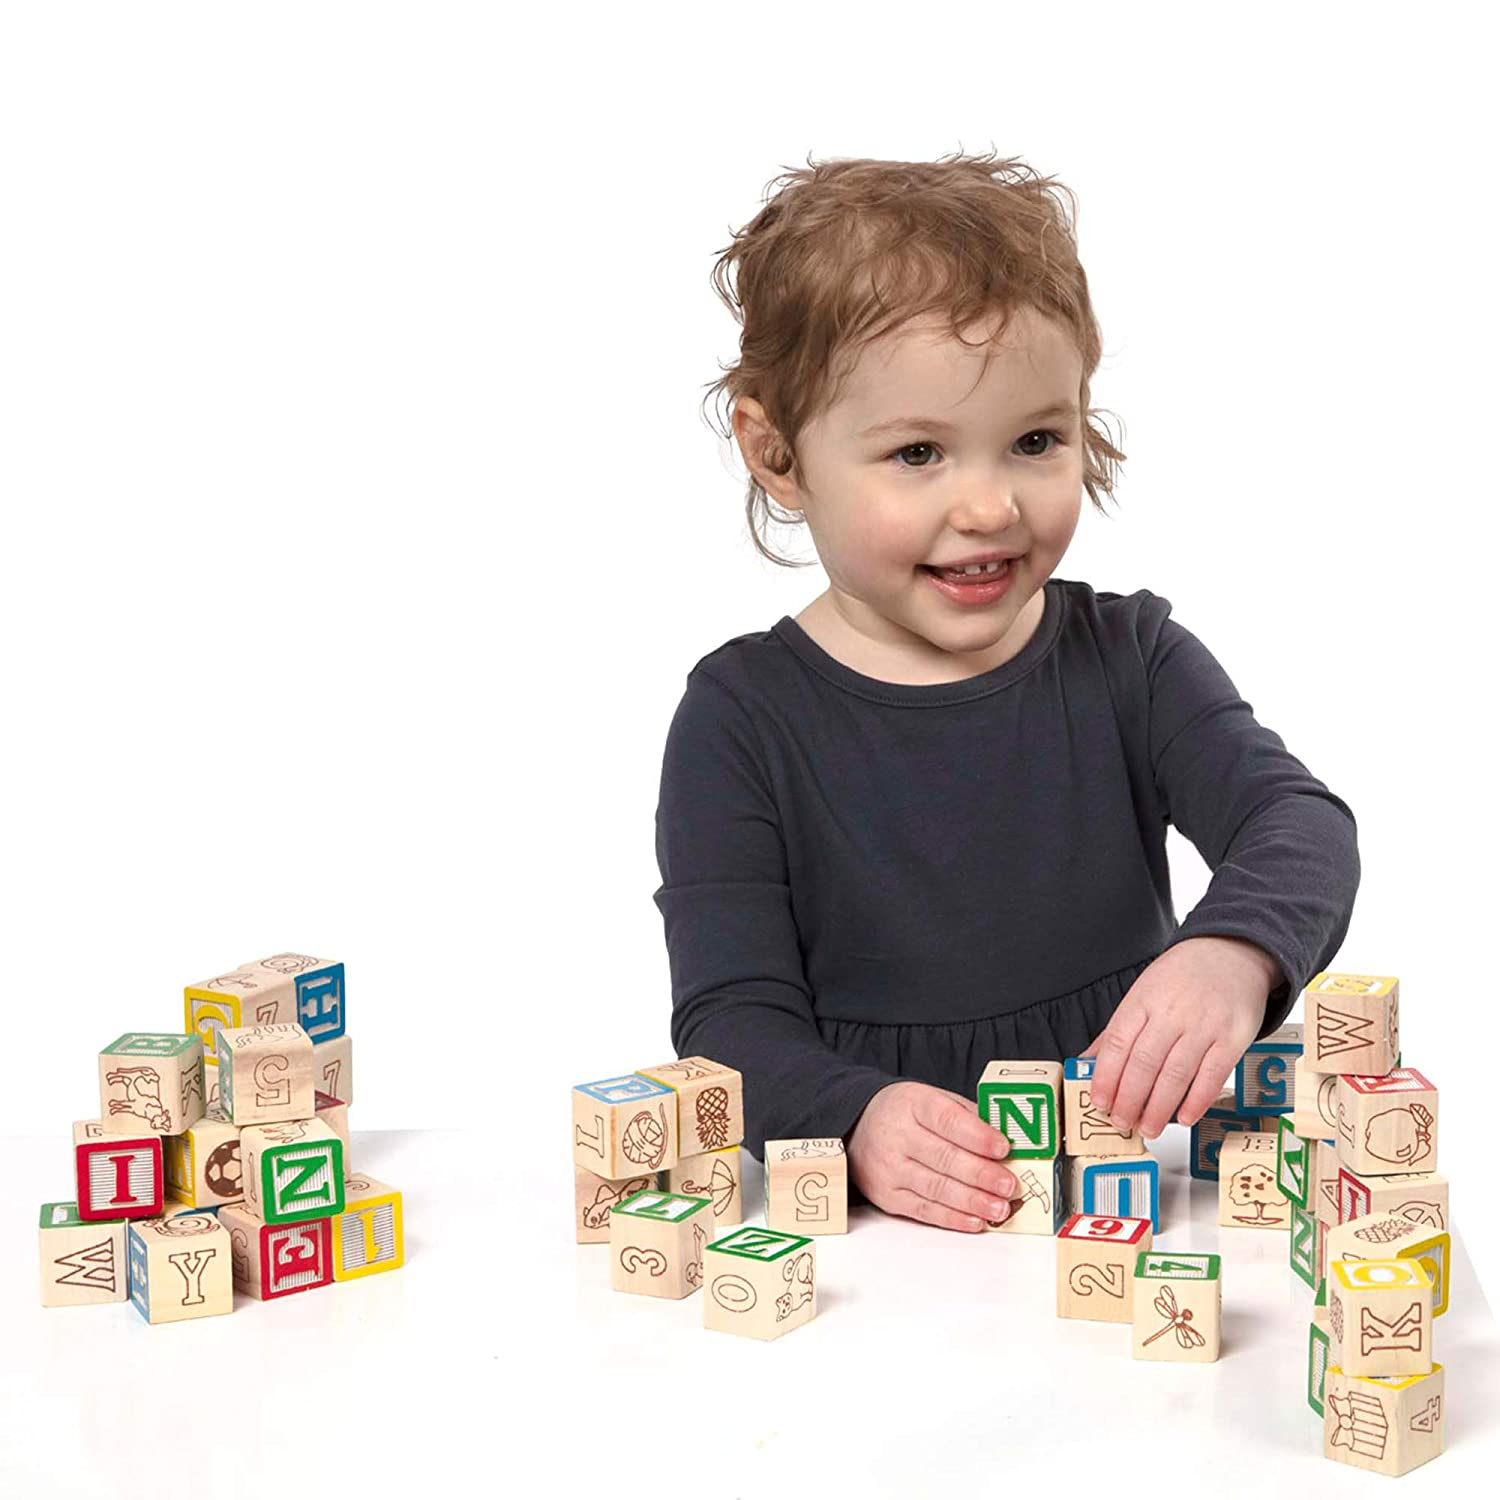 B000067NXE Melissa & Doug Deluxe Wooden ABC/123 Blocks Set (Developmental Toys, Storage Pouch, 1-Inch Wooden Blocks, 50 Pieces, Great Gift for Girls and Boys - Best for 2, 3, and 4 Year Olds) 71dfw-MGdiL